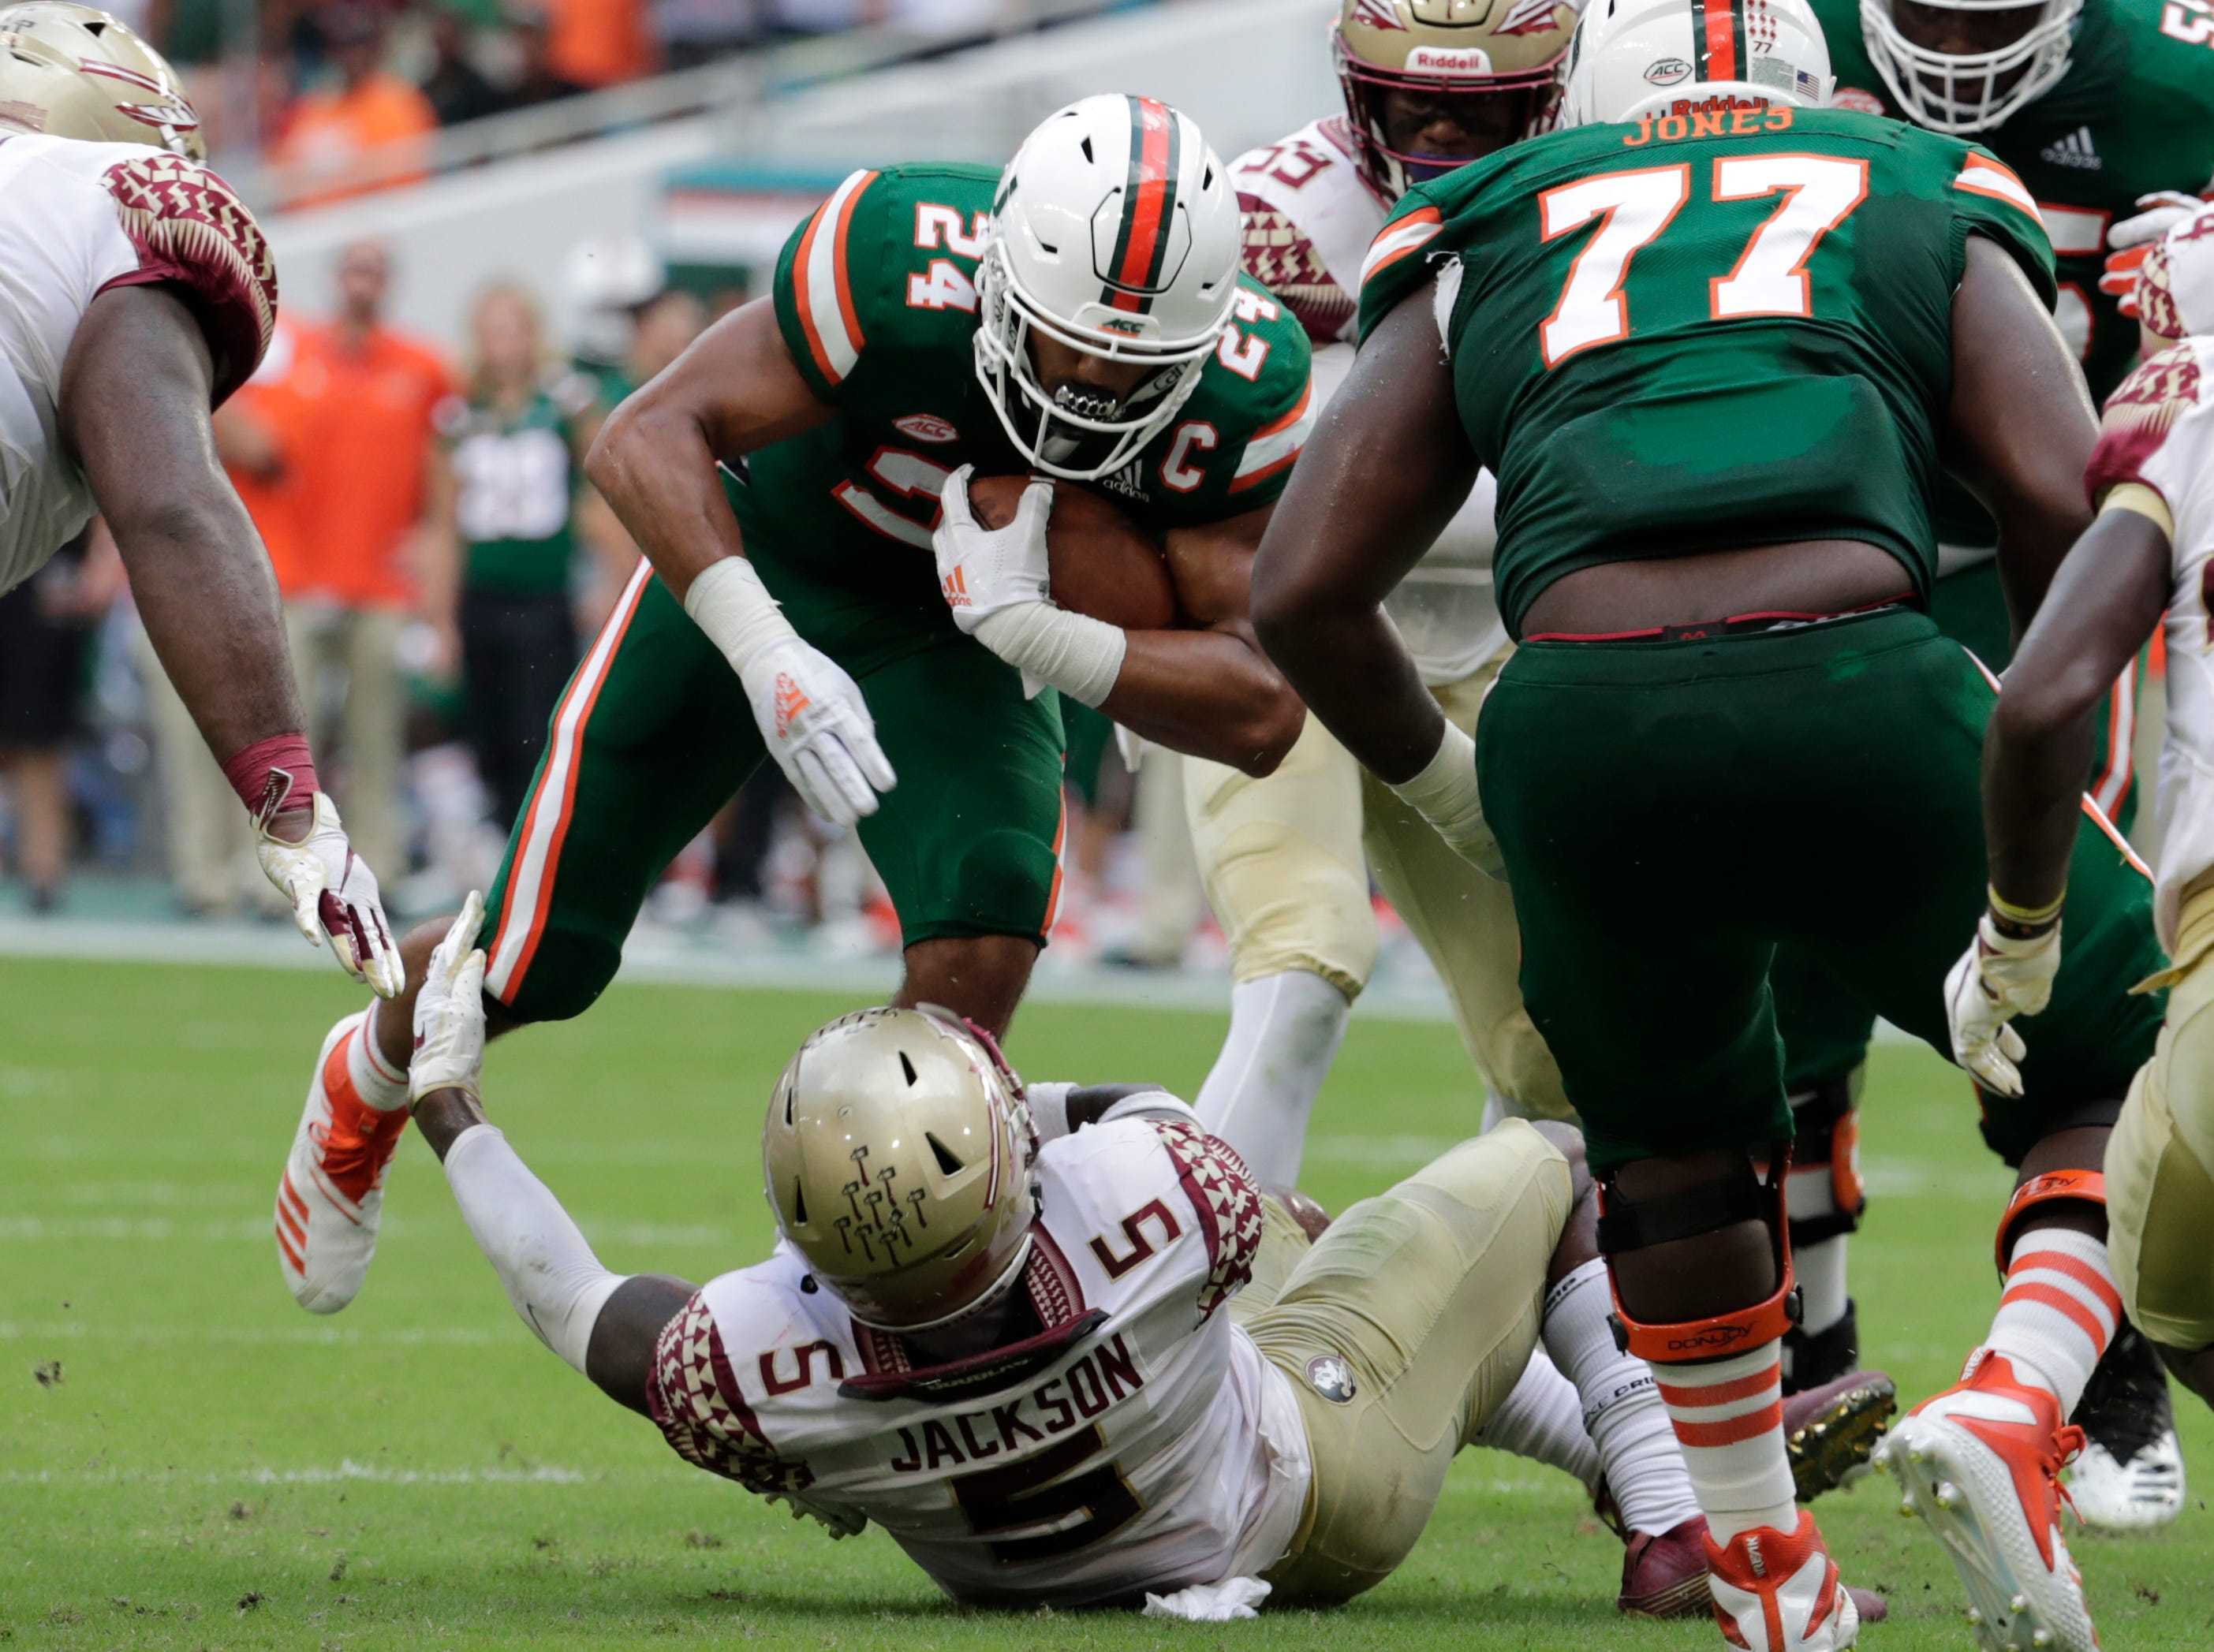 Miami running back Travis Homer (24) runs as Florida State linebacker Dontavious Jackson (5) defends during the first half of an NCAA college football game, Saturday, Oct. 6, 2018, in Miami Gardens, Fla. (AP Photo/Lynne Sladky)